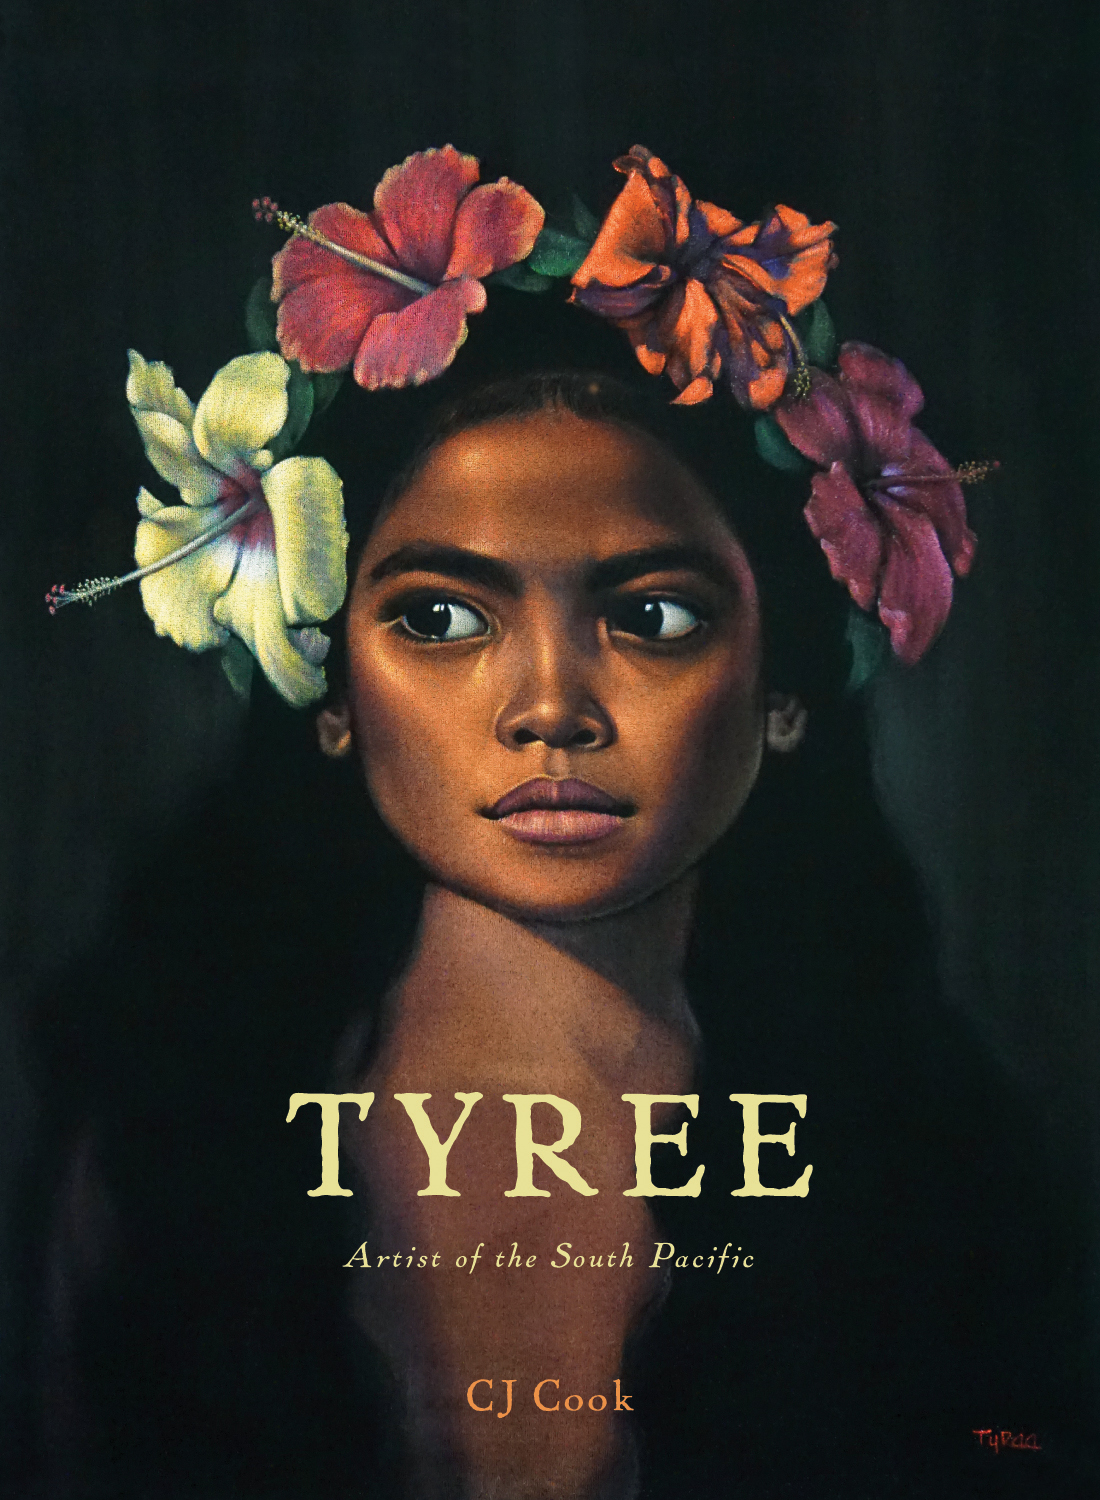 tyree_front_cover.jpg